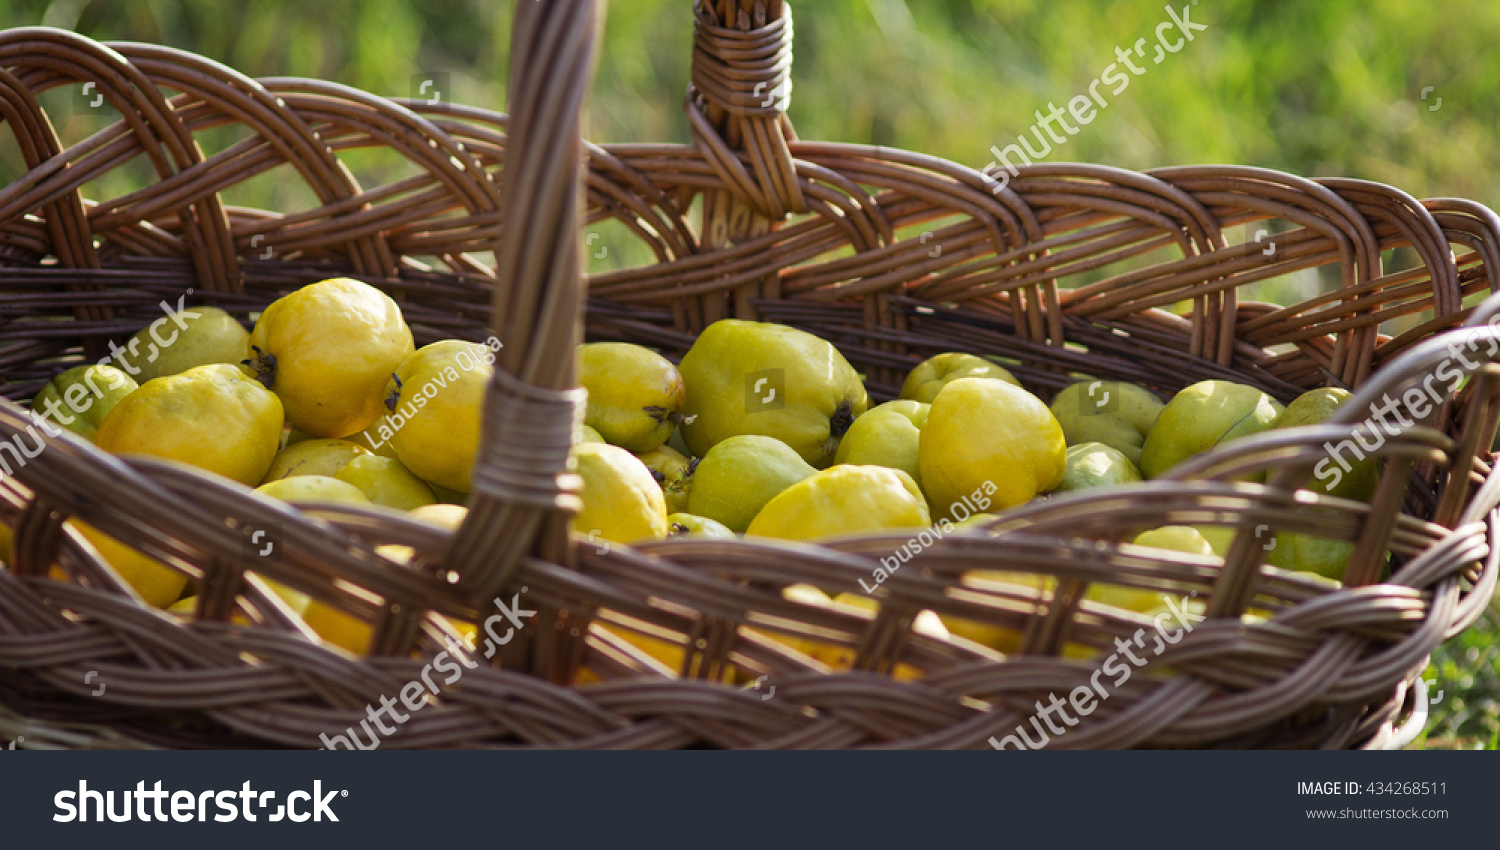 Japanese quince ripe fruits basket stock photo 434268511 japanese quince ripe fruits basket stock photo 434268511 shutterstock biocorpaavc Image collections